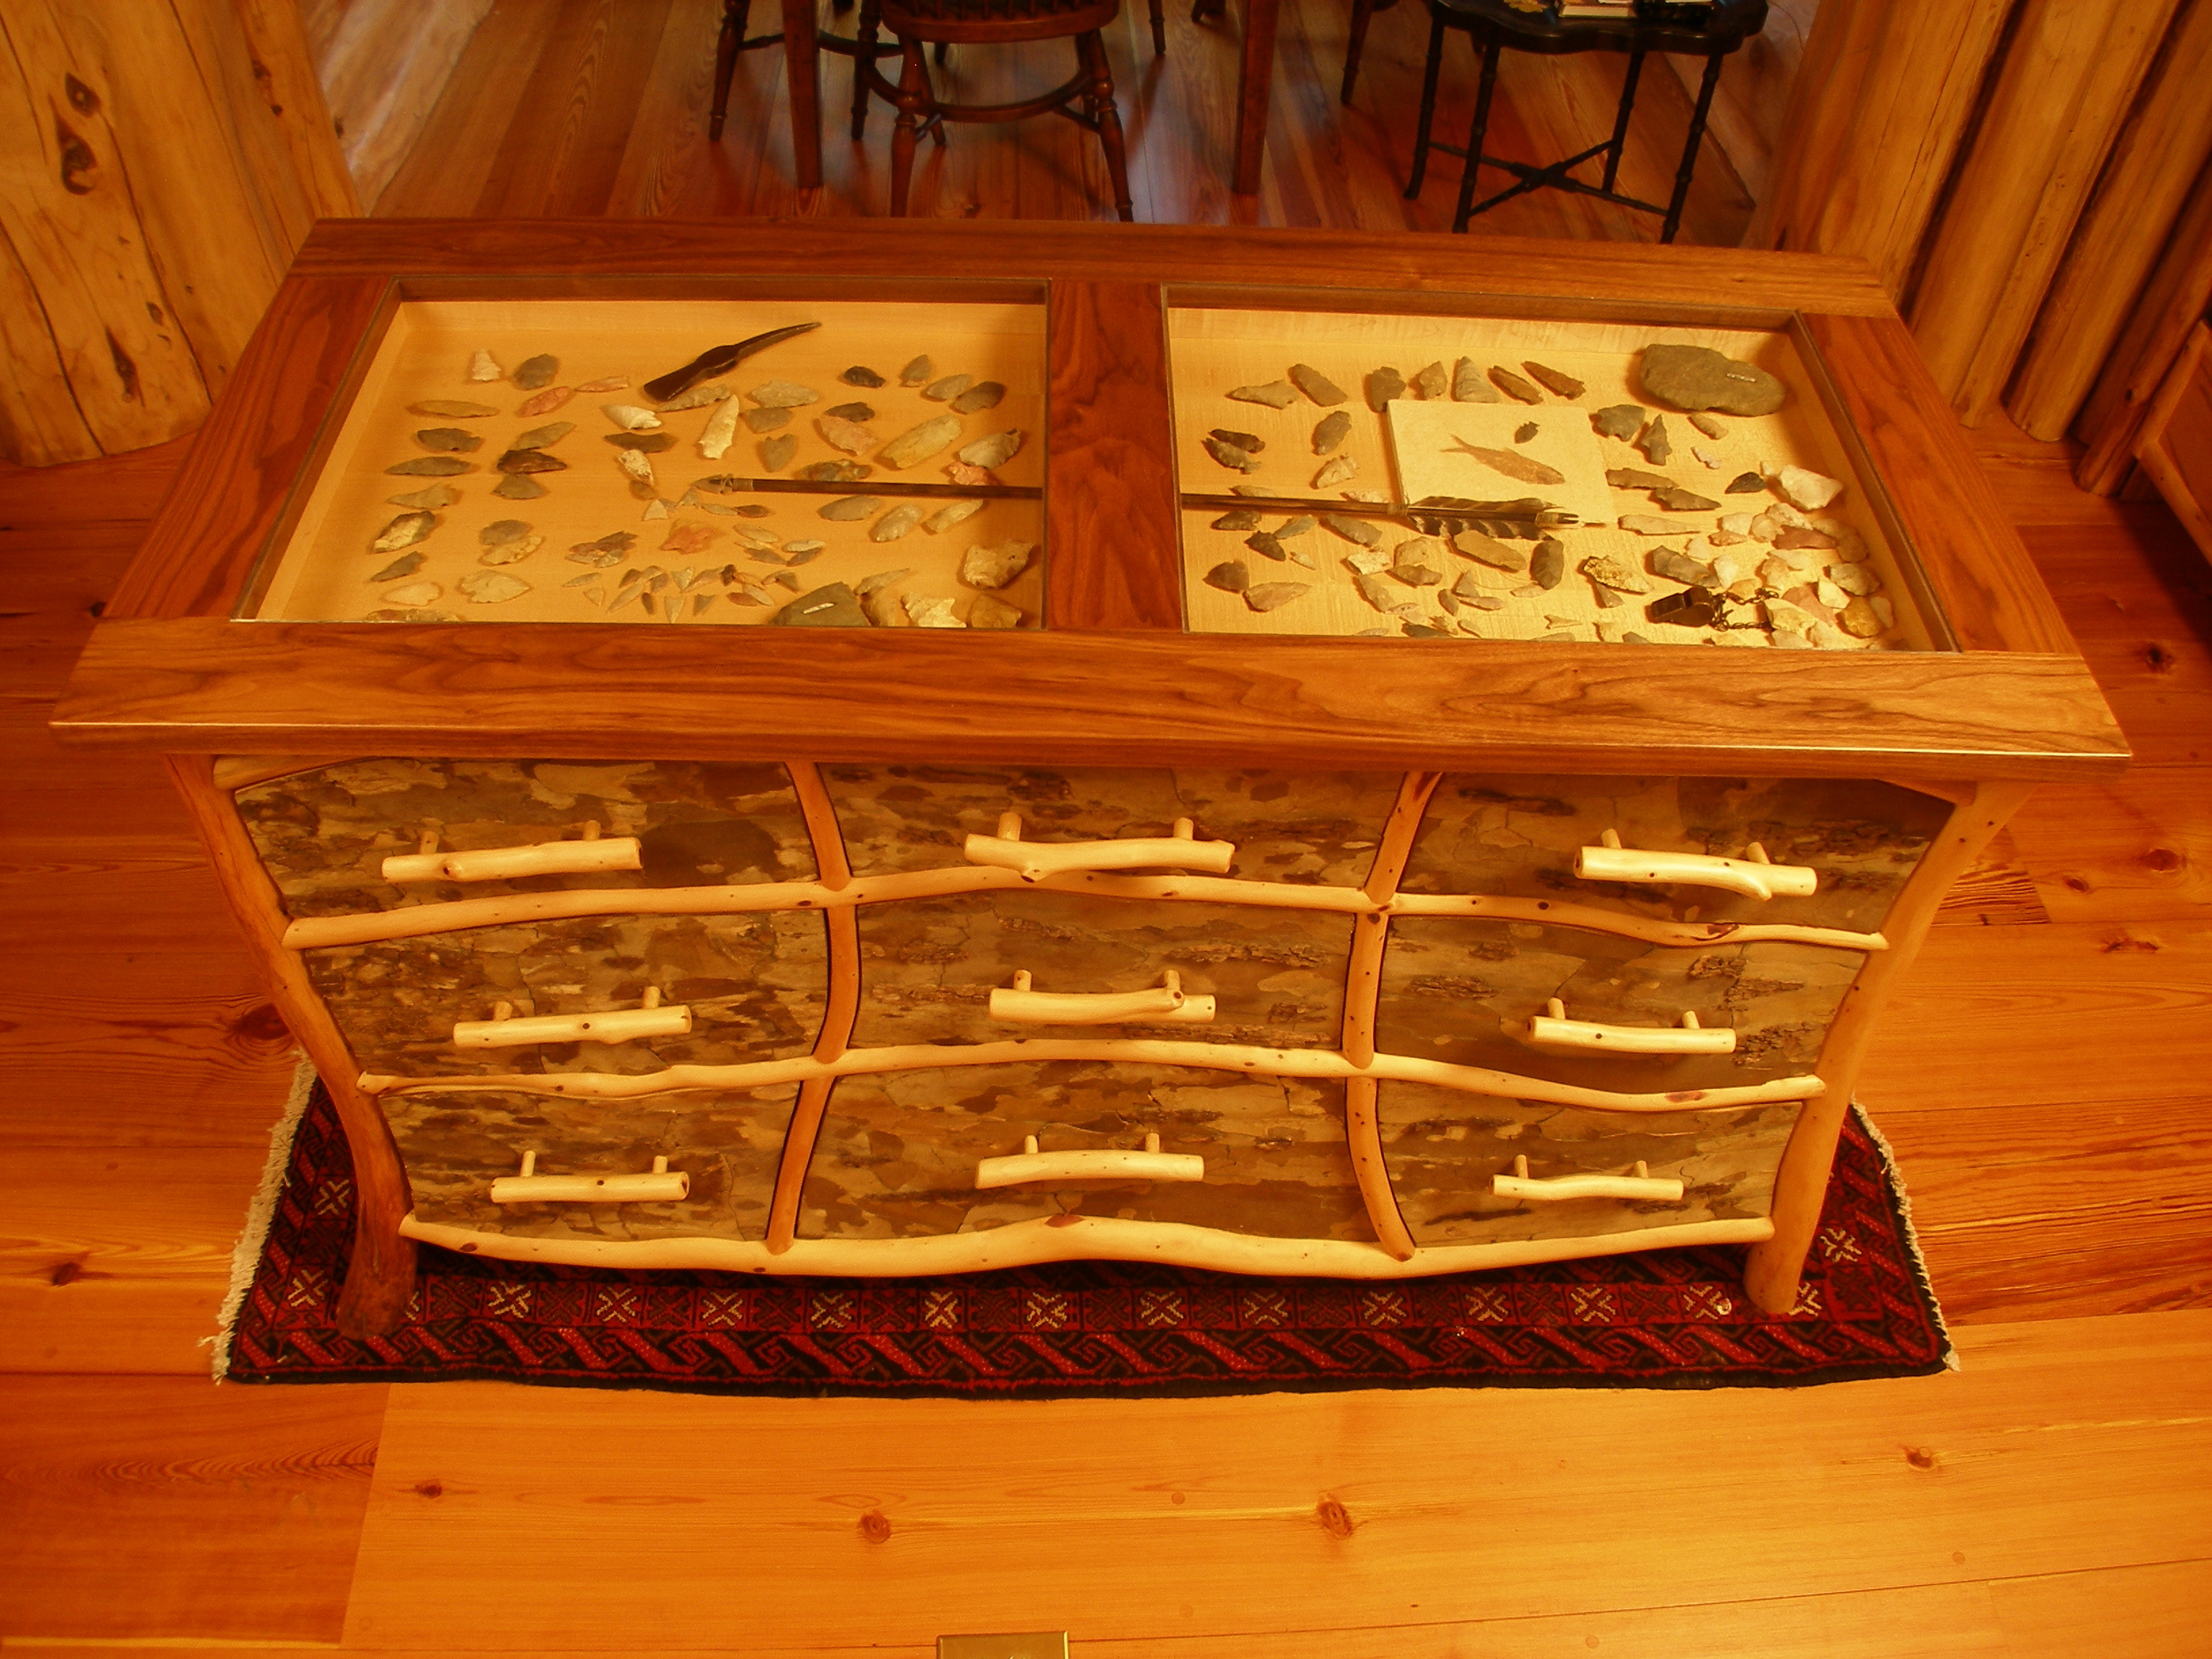 Kitchen island artifact display case-walnut top and eastern cedar frames with sycamore bark panels.